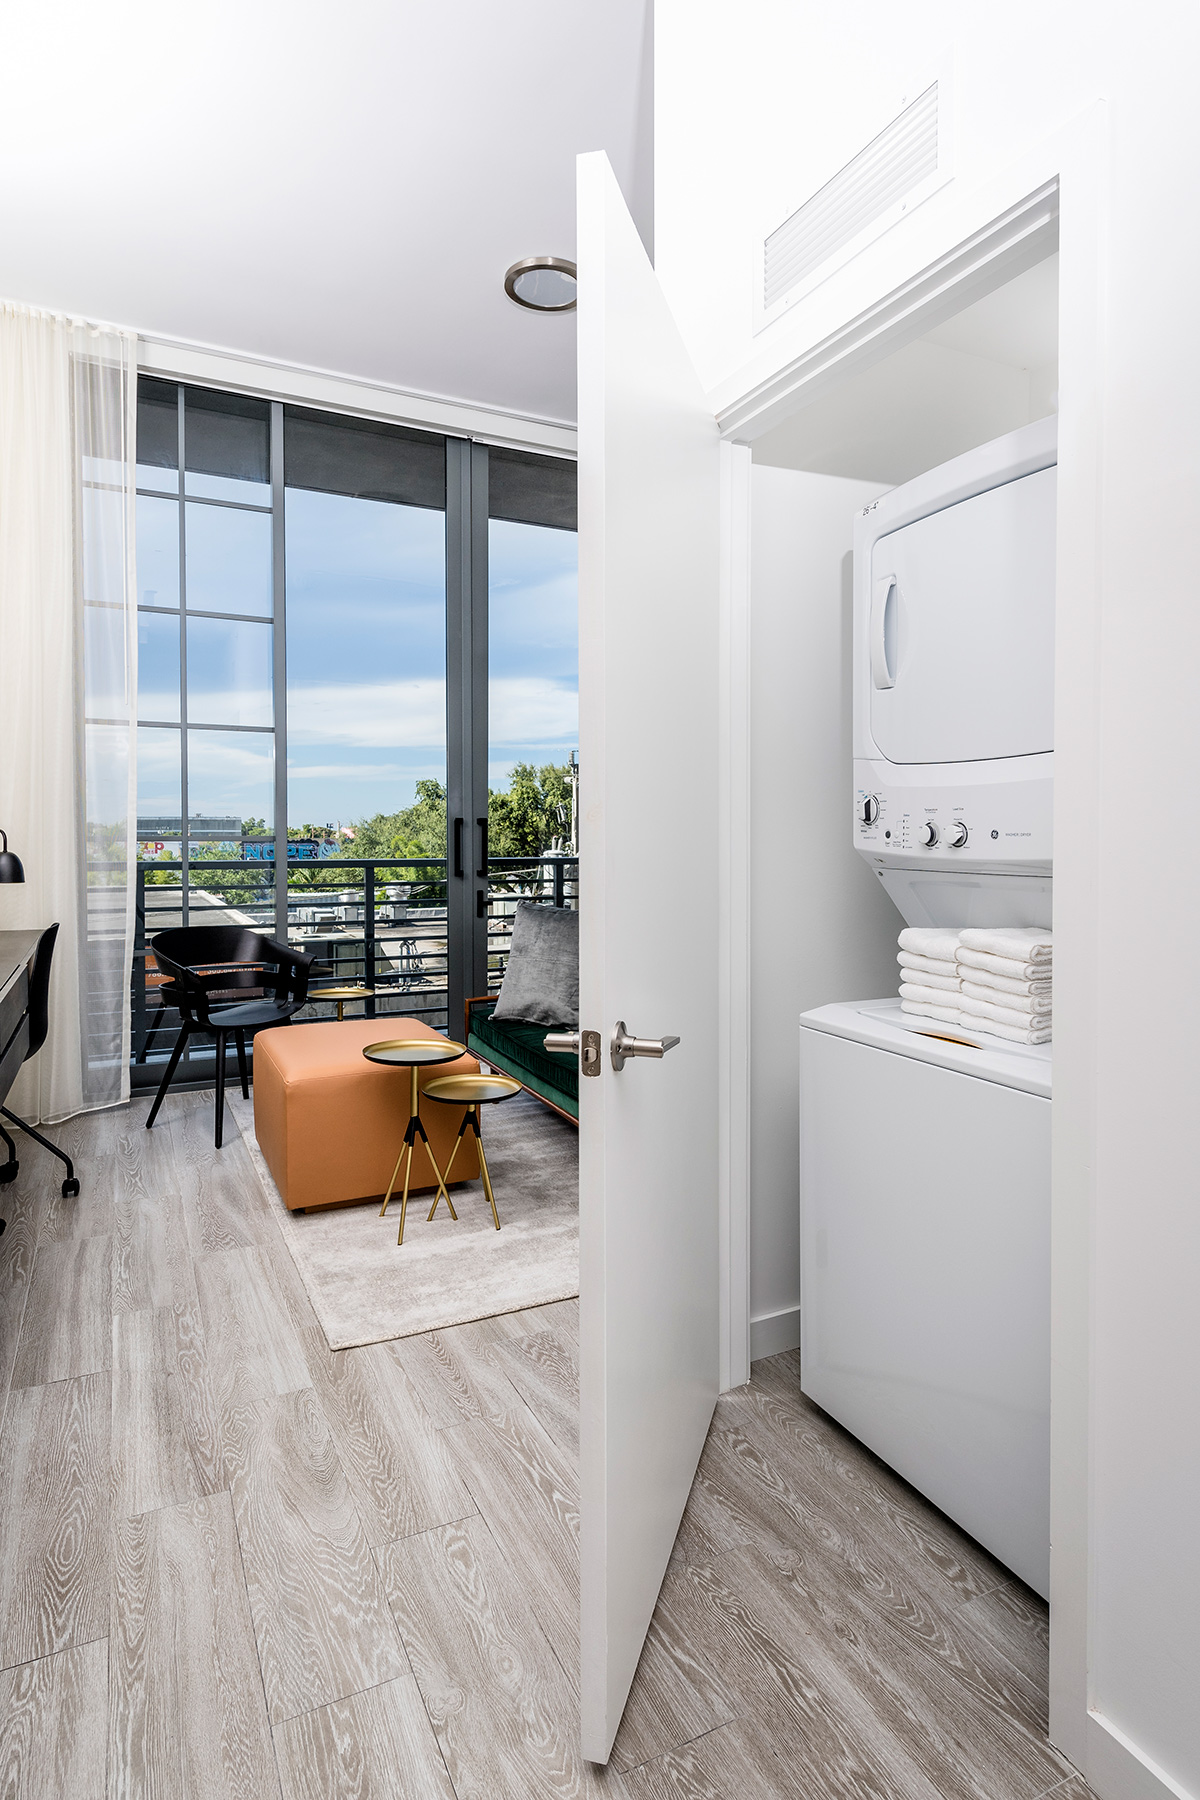 Studio apartment washer and dryer